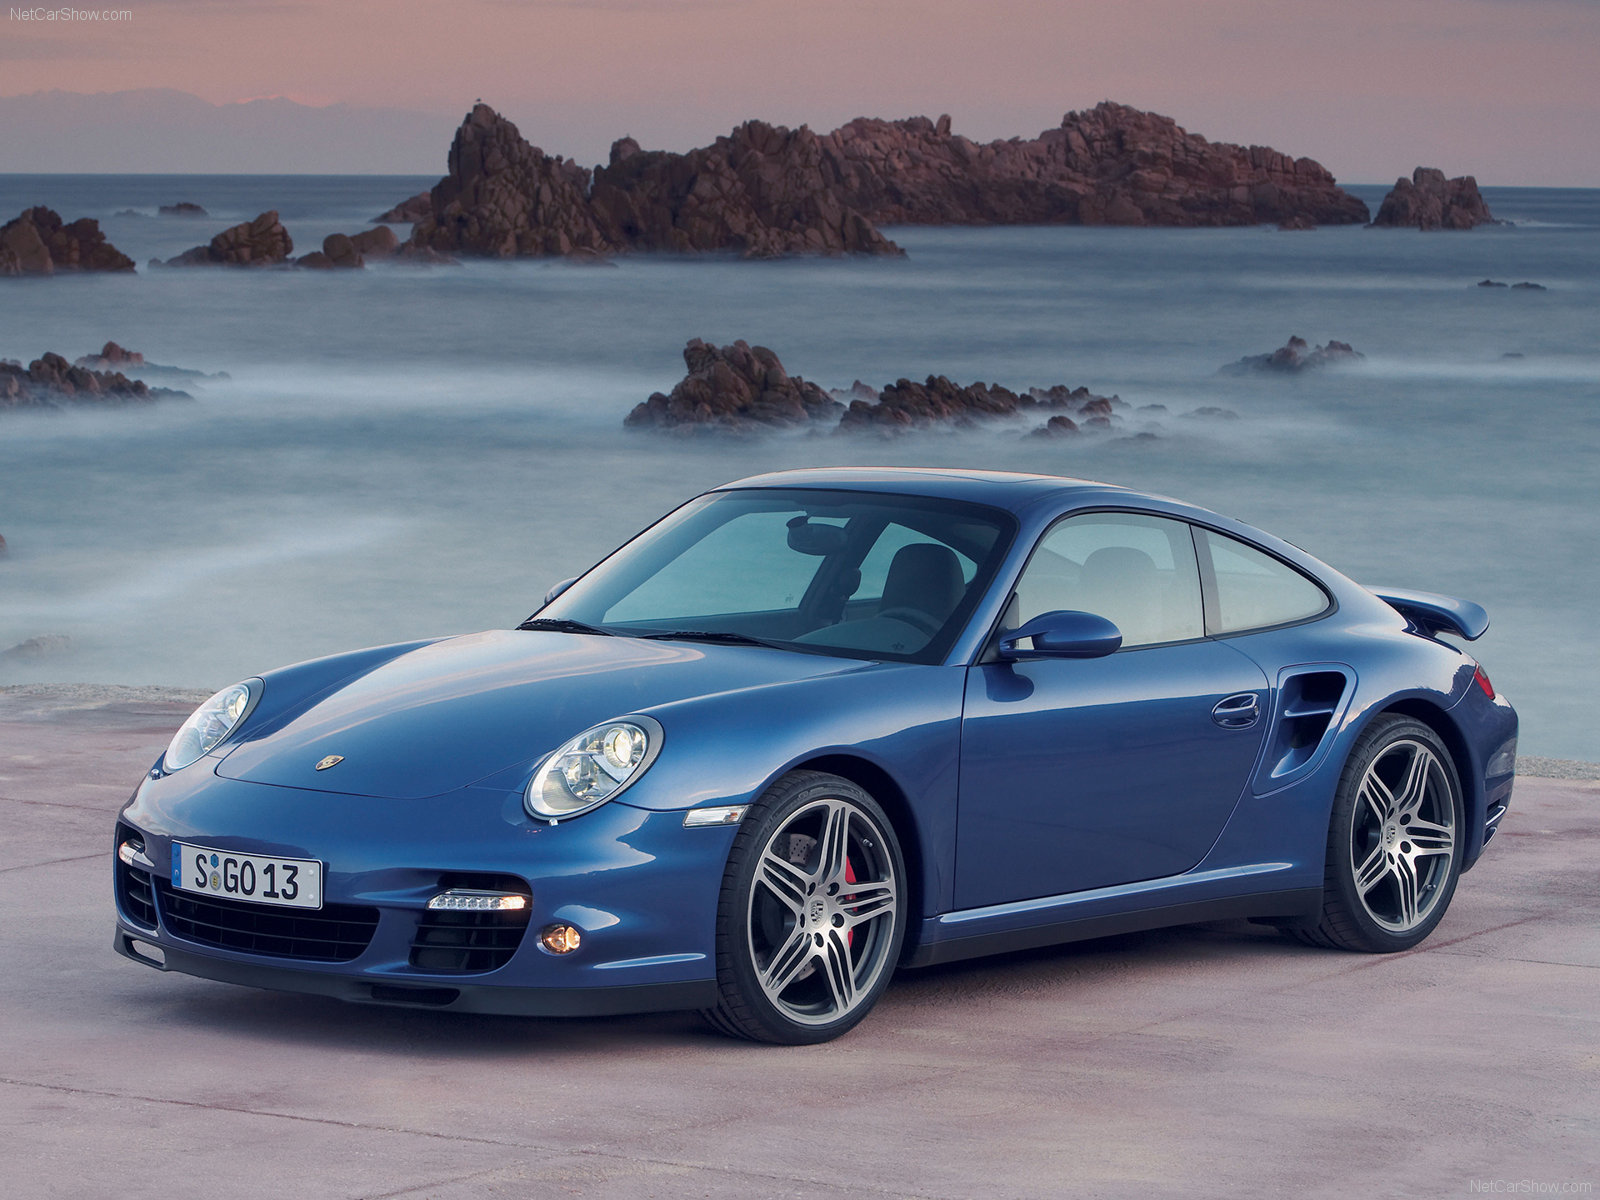 2007 Blue Porsche 911 Turbo Wallpapers